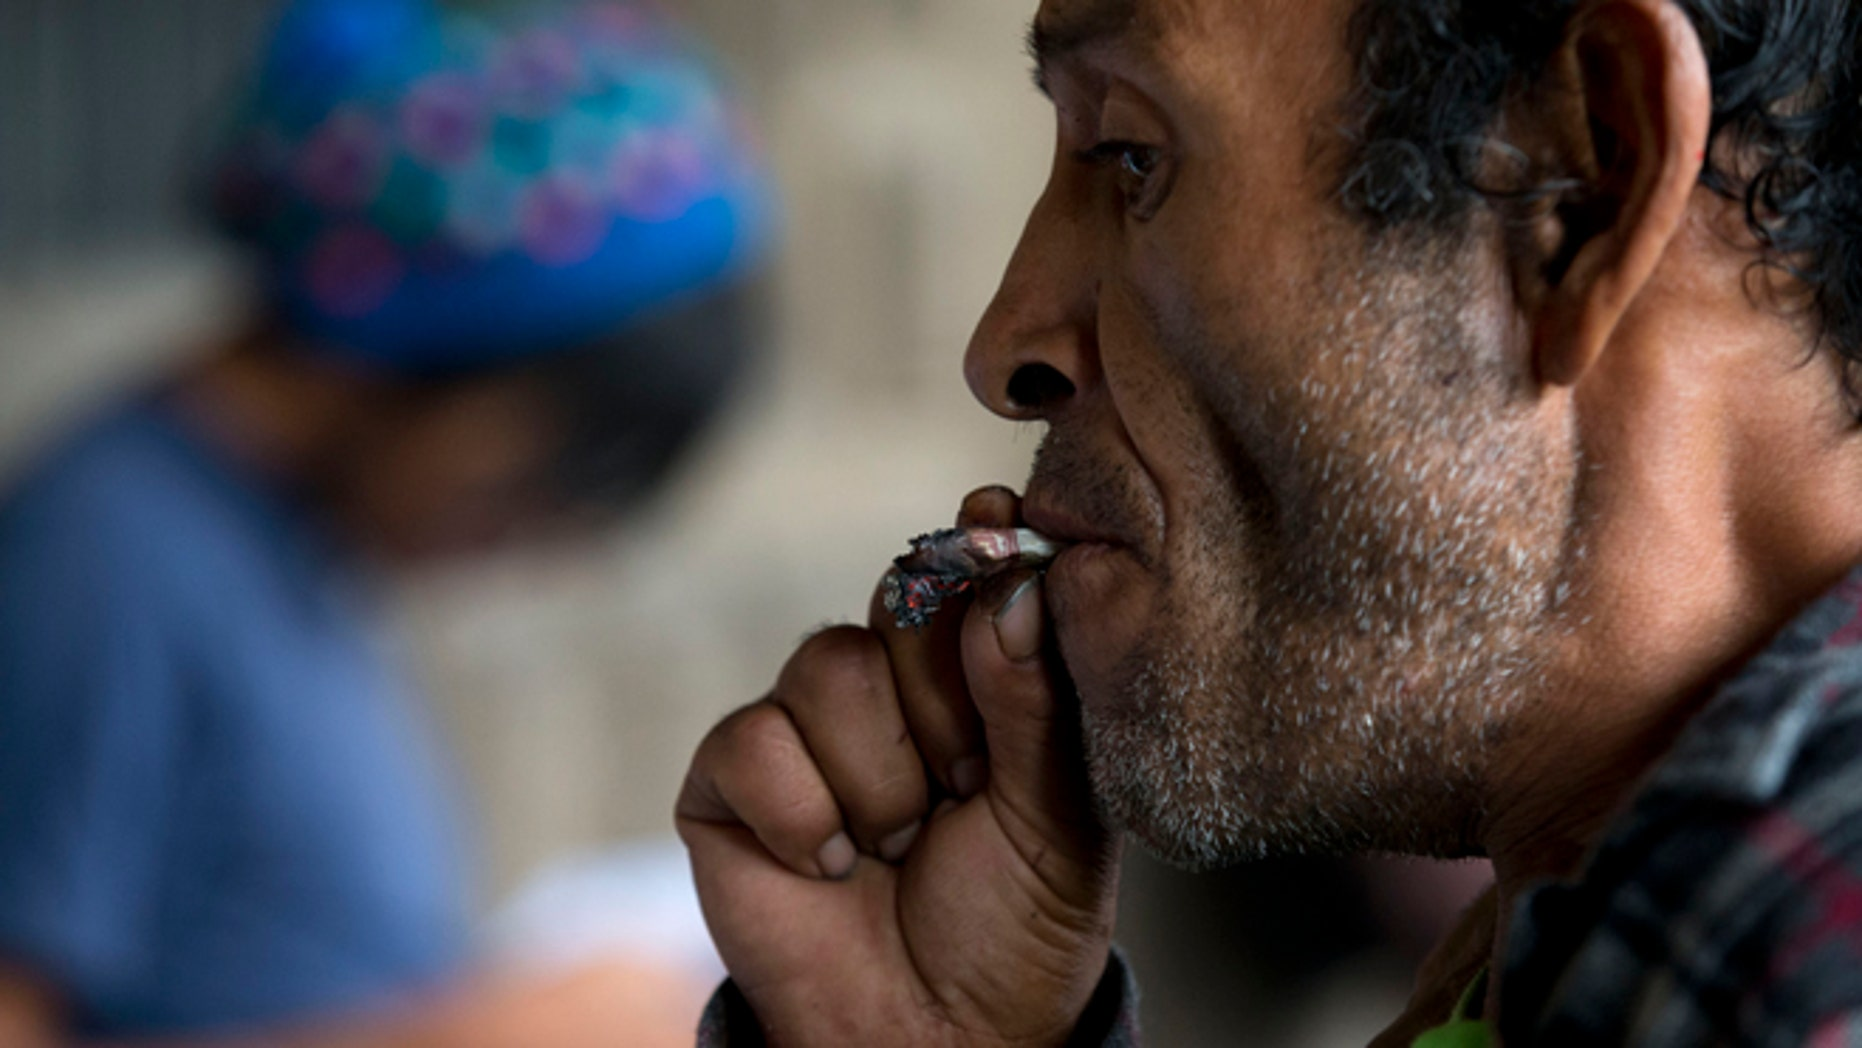 A passerby stops to bum a smoke from marijuana legalization activists, outside Mexico's Supreme Court which was scheduled to discuss a case challenging the constitutionality of a ban on recreational use in Mexico City, Wednesday, Oct. 28, 2015. The court postponed for at least one week the planned debate, which could open the way for Mexicans to grow and smoke marijuana recreationally. (AP Photo/Rebecca Blackwell)